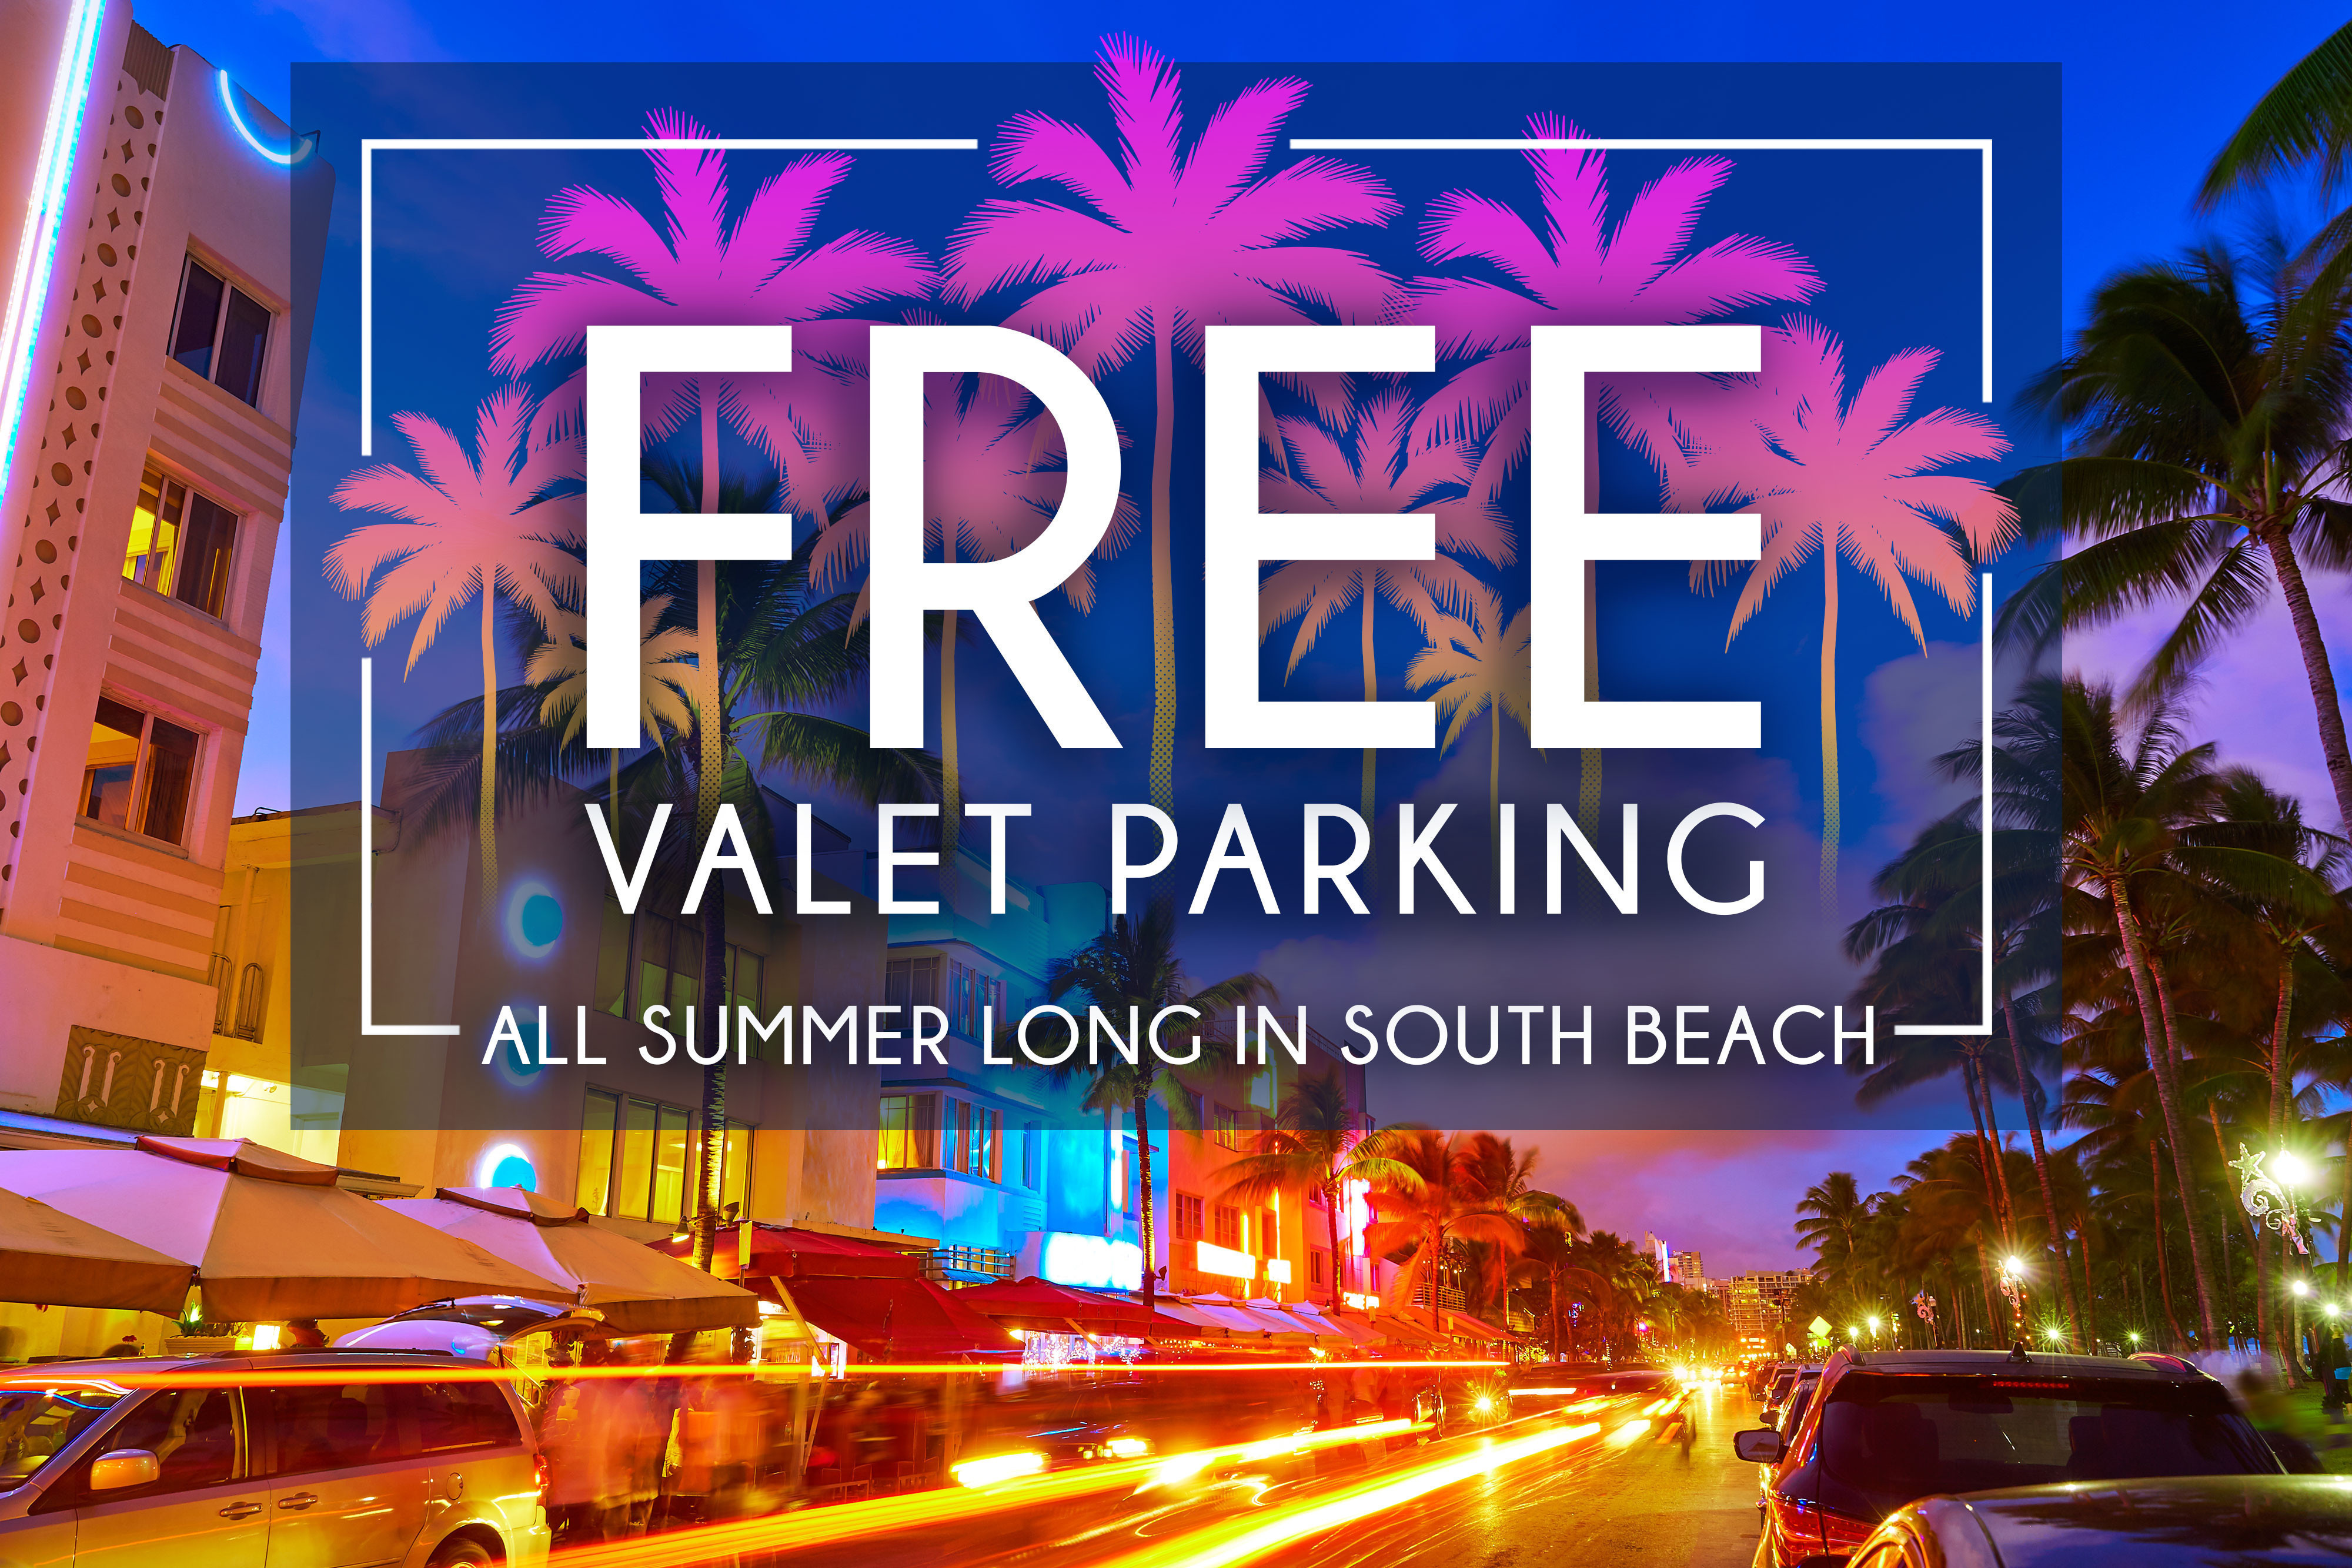 Escape to Westgate South Beach Oceanfront Resort for an incredible special rate featuring FREE valet parking ($42 daily value), a $10 daily dining voucher at Fresco Café, PLUS free use of two beach chairs and an umbrella ($15 daily value).